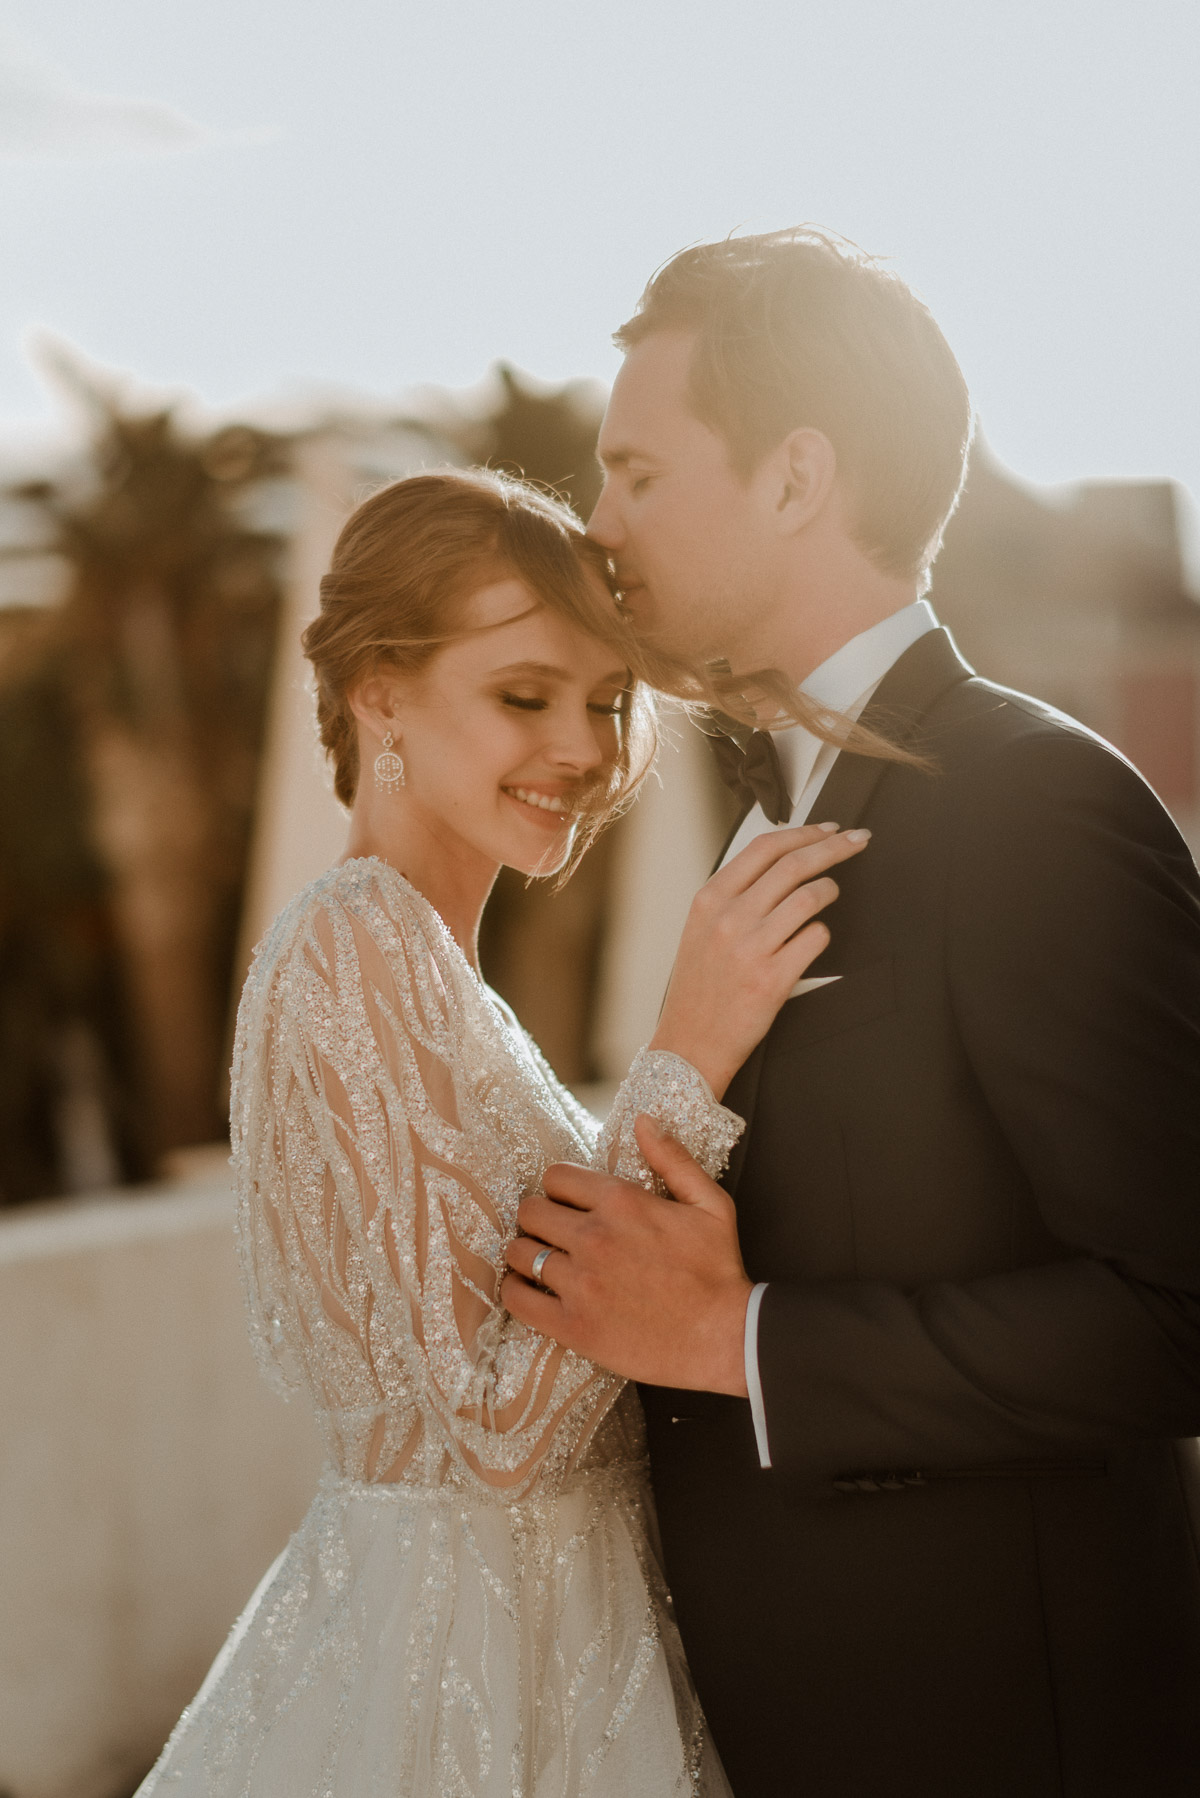 Could Croatia Be The New Destination Wedding Capitol Of The World?